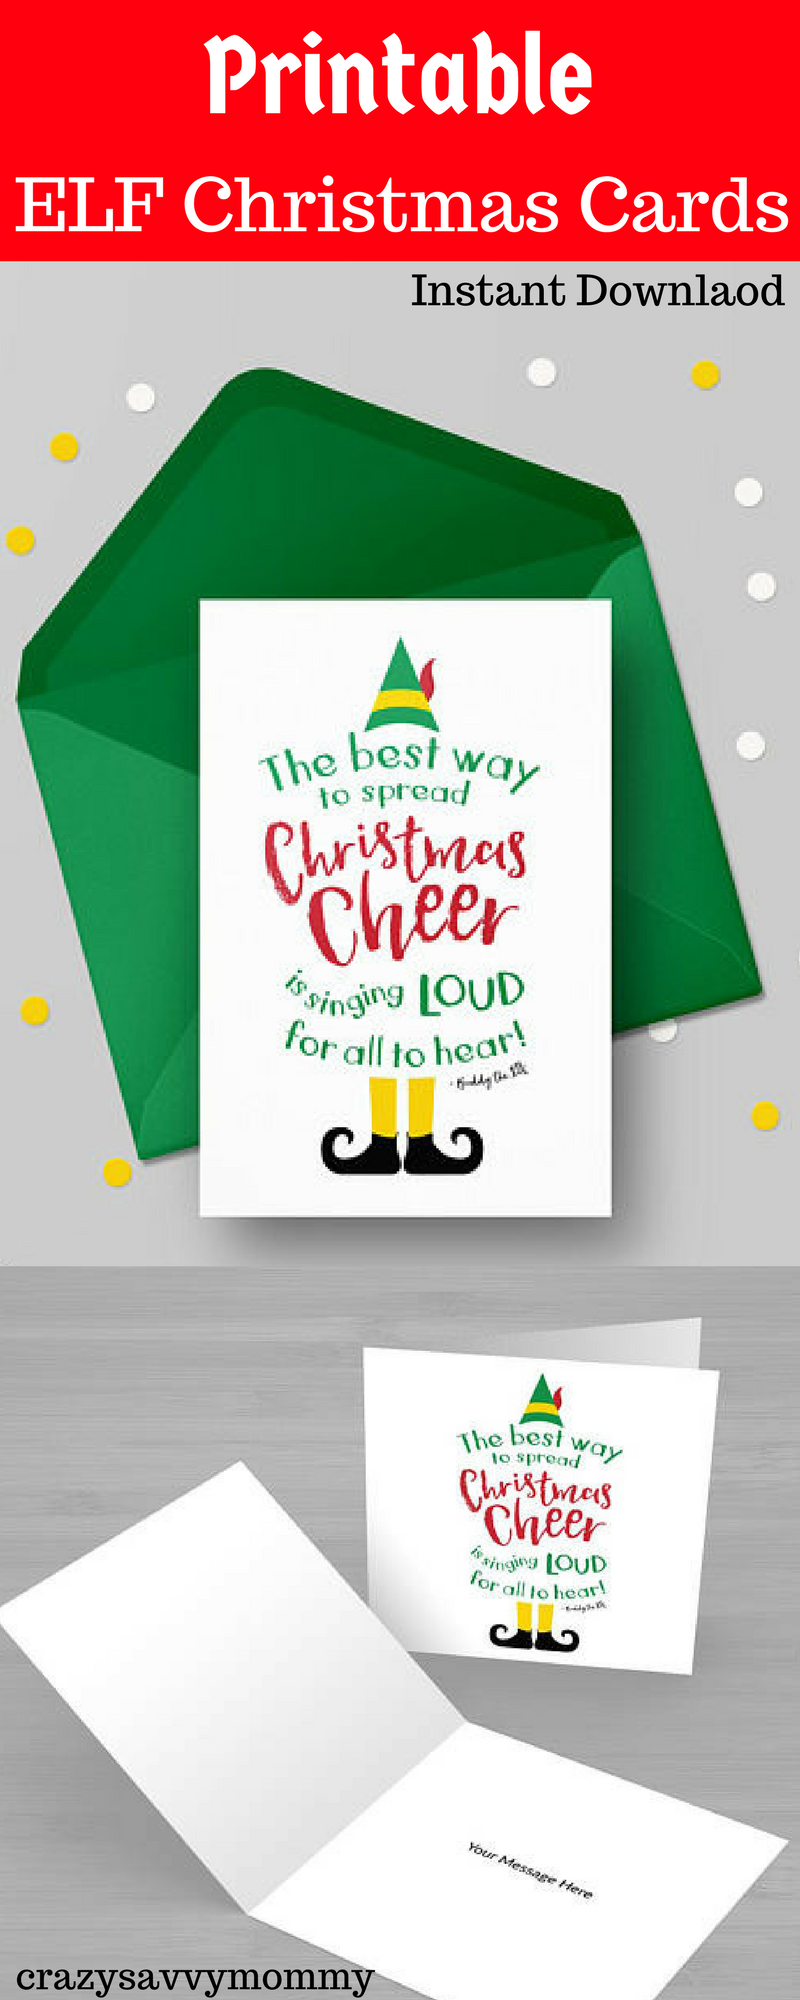 Why buy Christmas cards when you can download them instantly!? Super ...